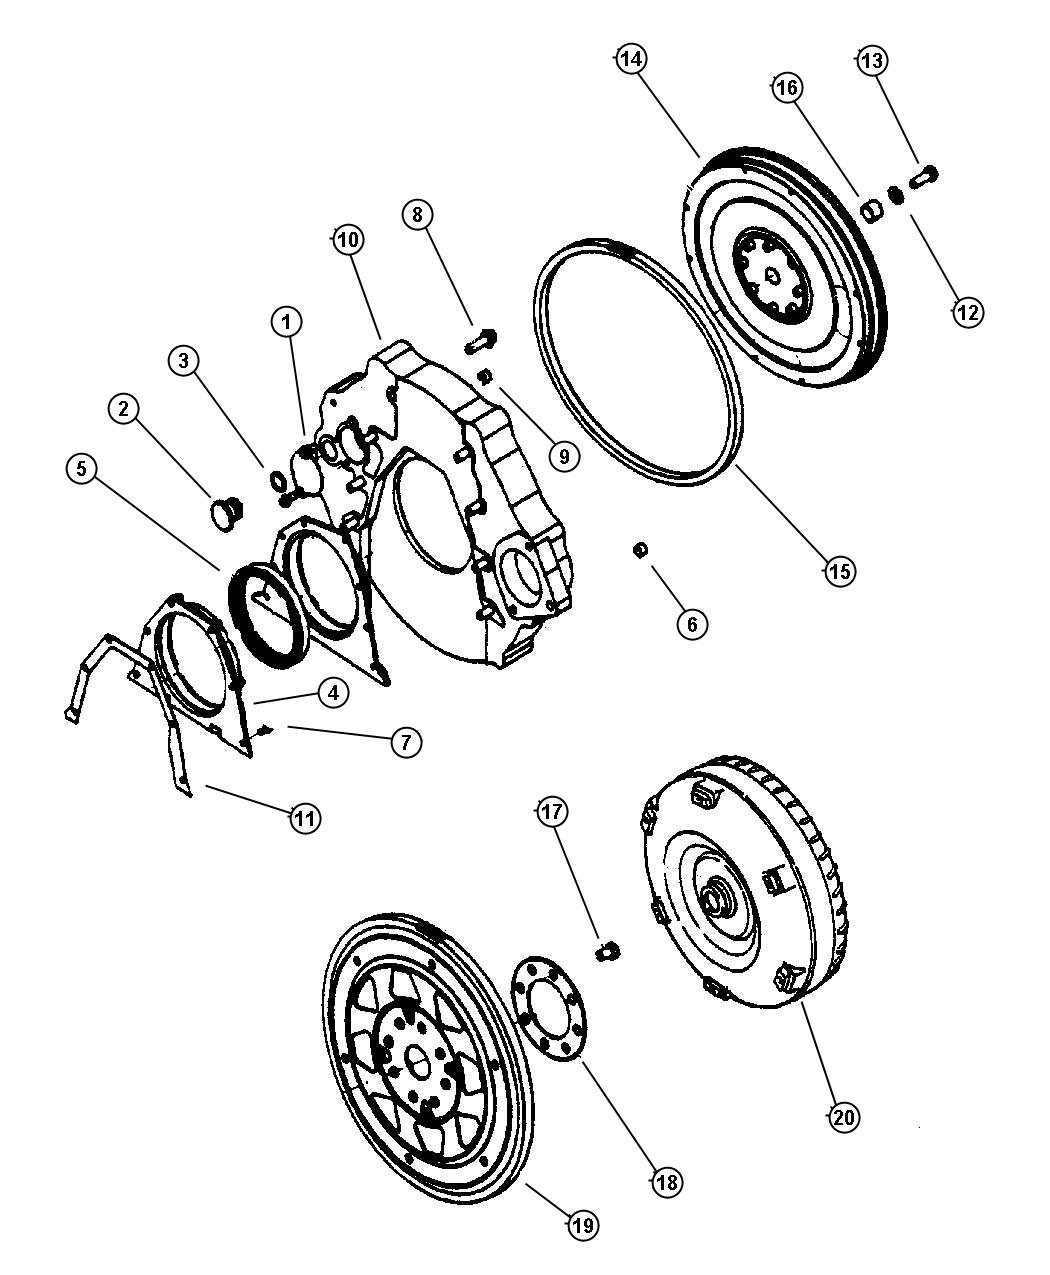 How To Disarm The Alarm On A 2001 Hummer H1 likewise Jeep Air Suspension Wiring Harness Diagram likewise Bumper And  ponents Front Scat together with Mopar Pulley 68257495aa besides 1992 F150 Wiring Harness. on chrysler concorde body kit